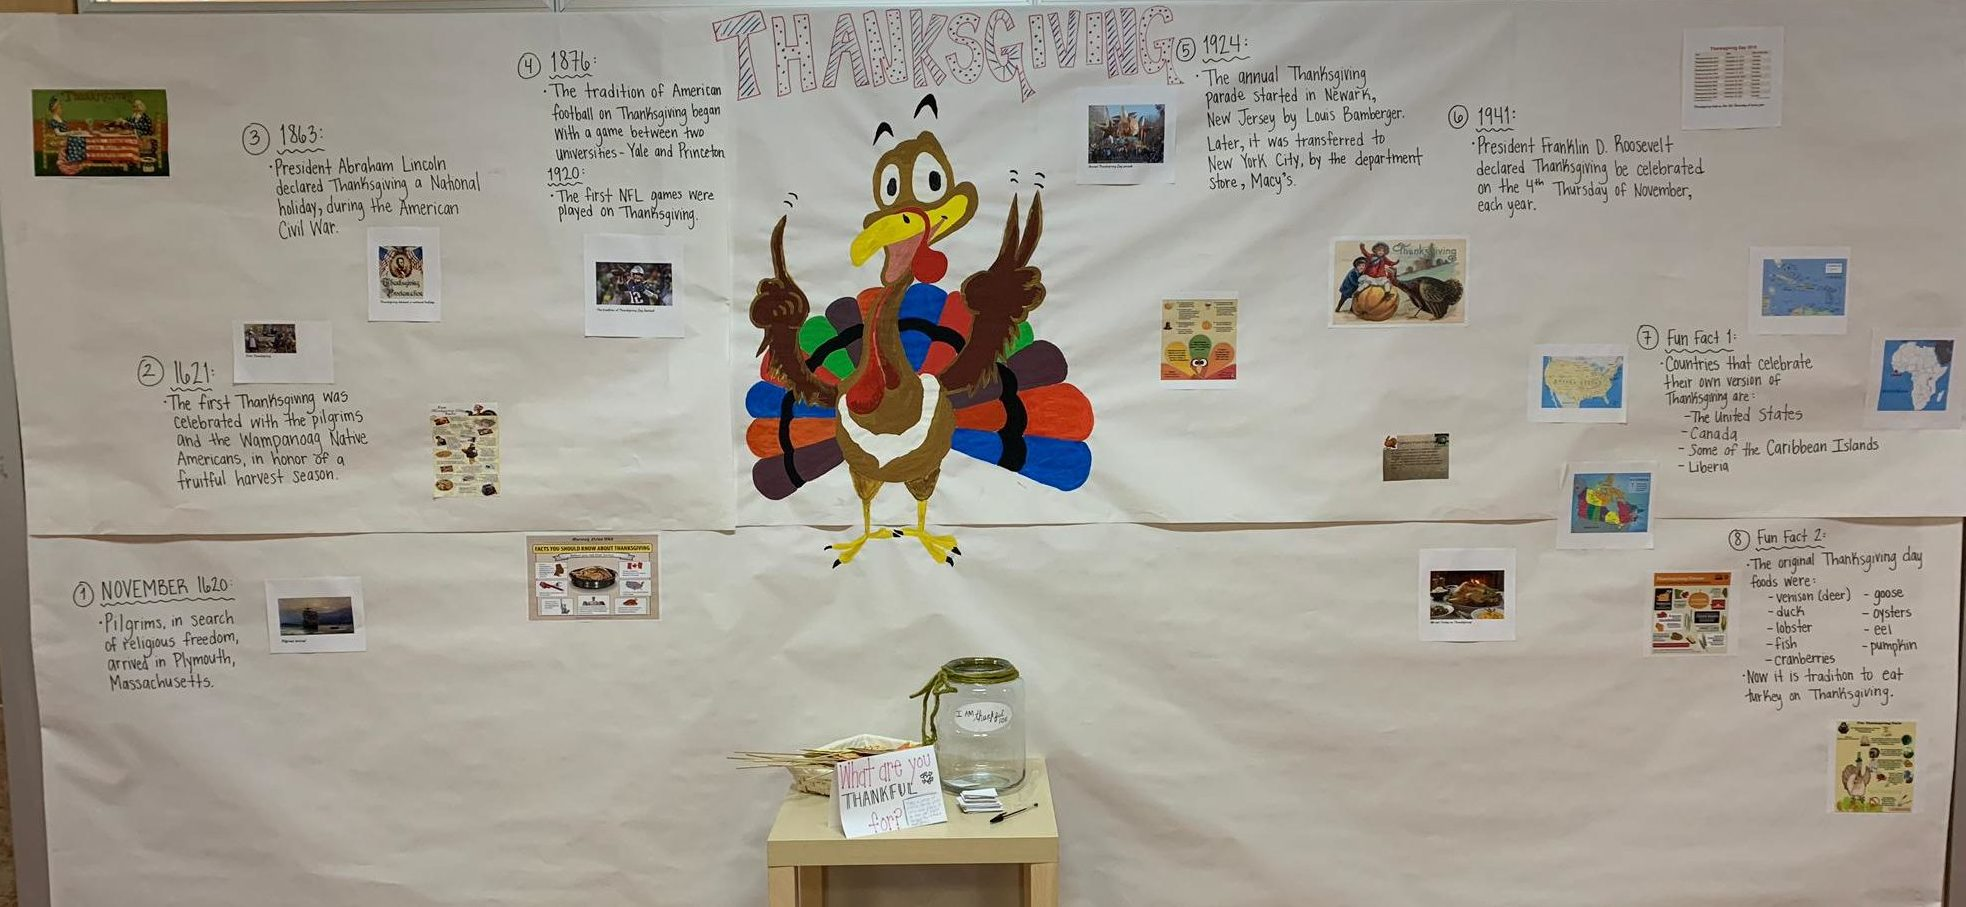 Fun facts about the history of Thanksgiving!